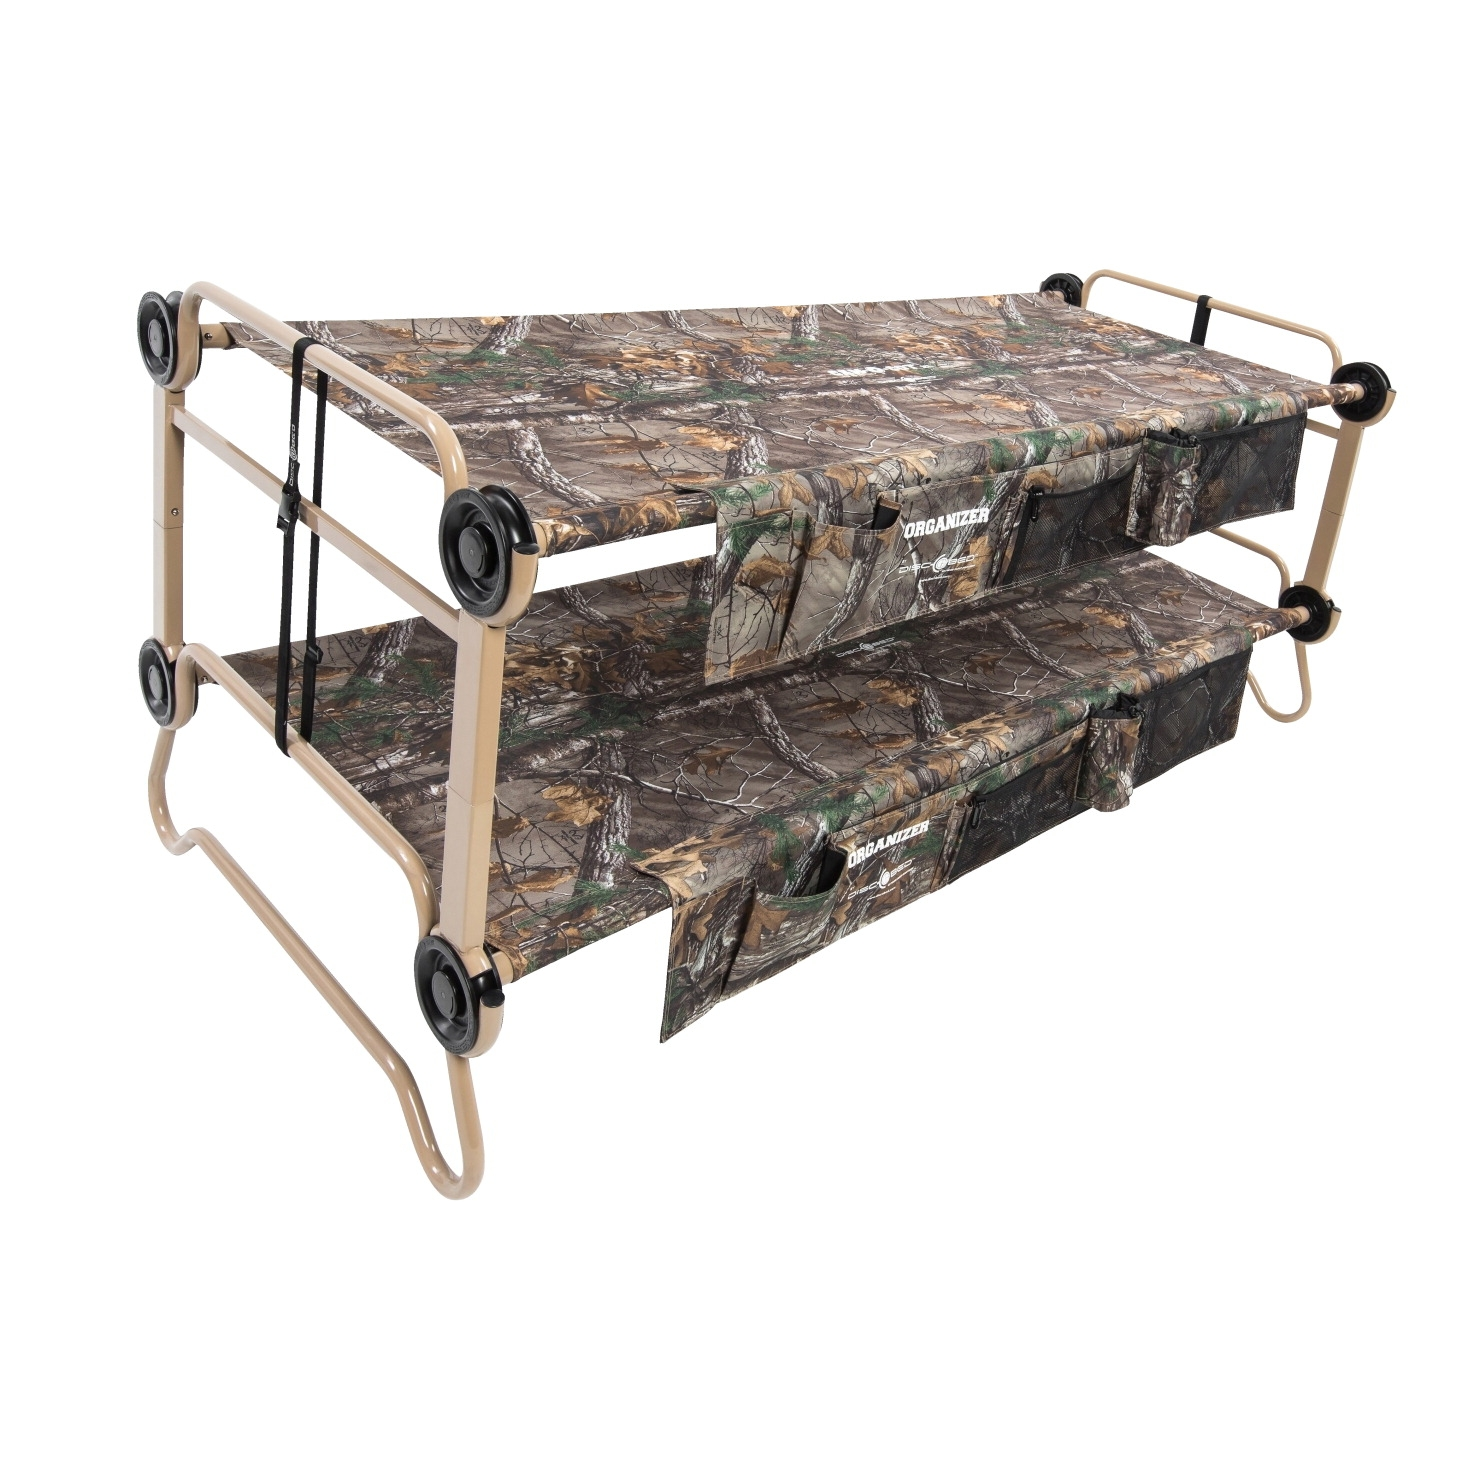 Disc-o-bed Xl Cam-o-bunk With 2 Organizers; Realtree Xtra Camouflage - 1527320 - Games Sports Outdoors Themed Cornhole Bags 1527320